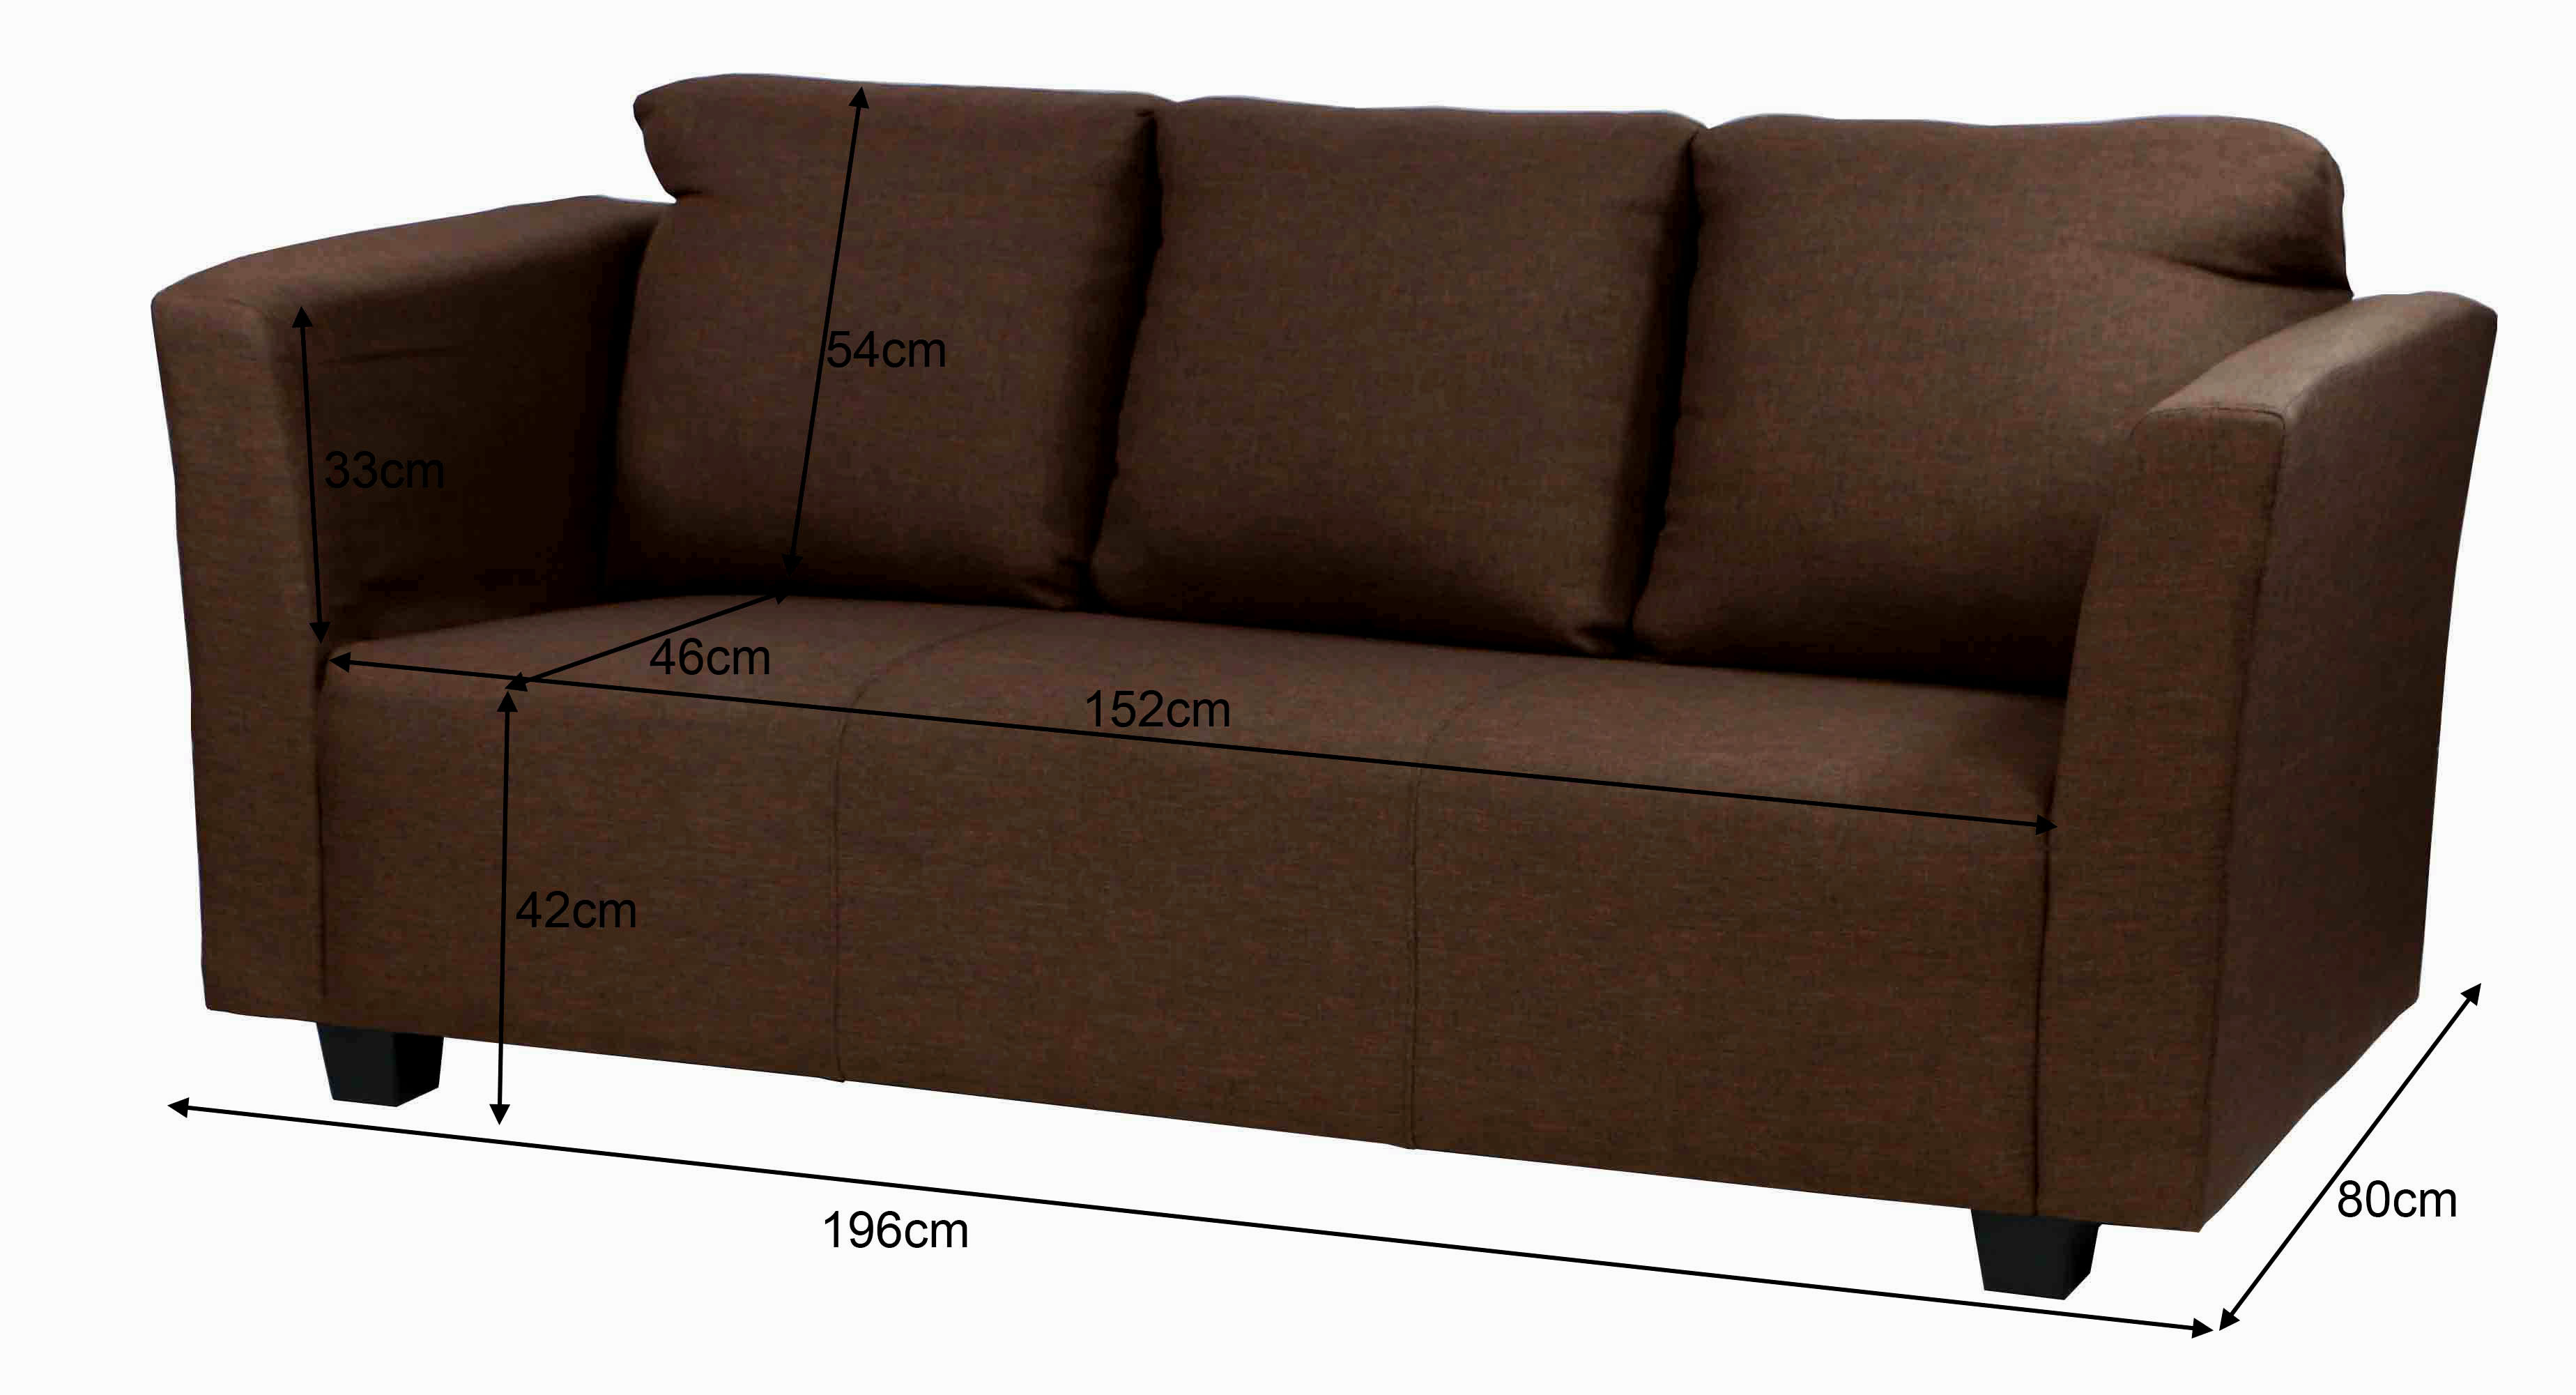 inspirational two seater sofa bed décor-Amazing Two Seater sofa Bed Inspiration